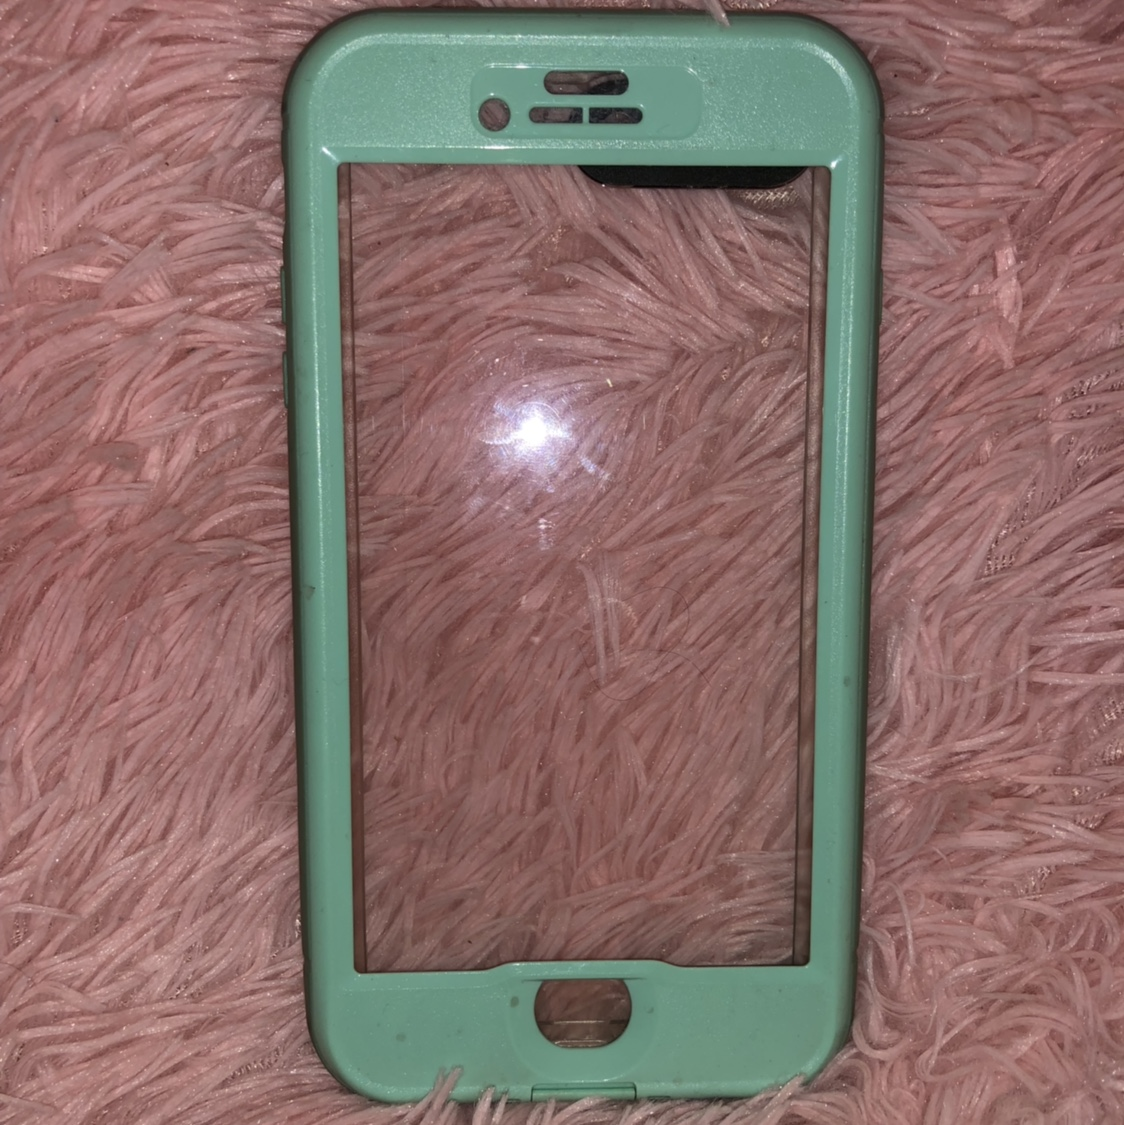 Fake lifeproof case  iPhone 8 Plus! $2 - Depop